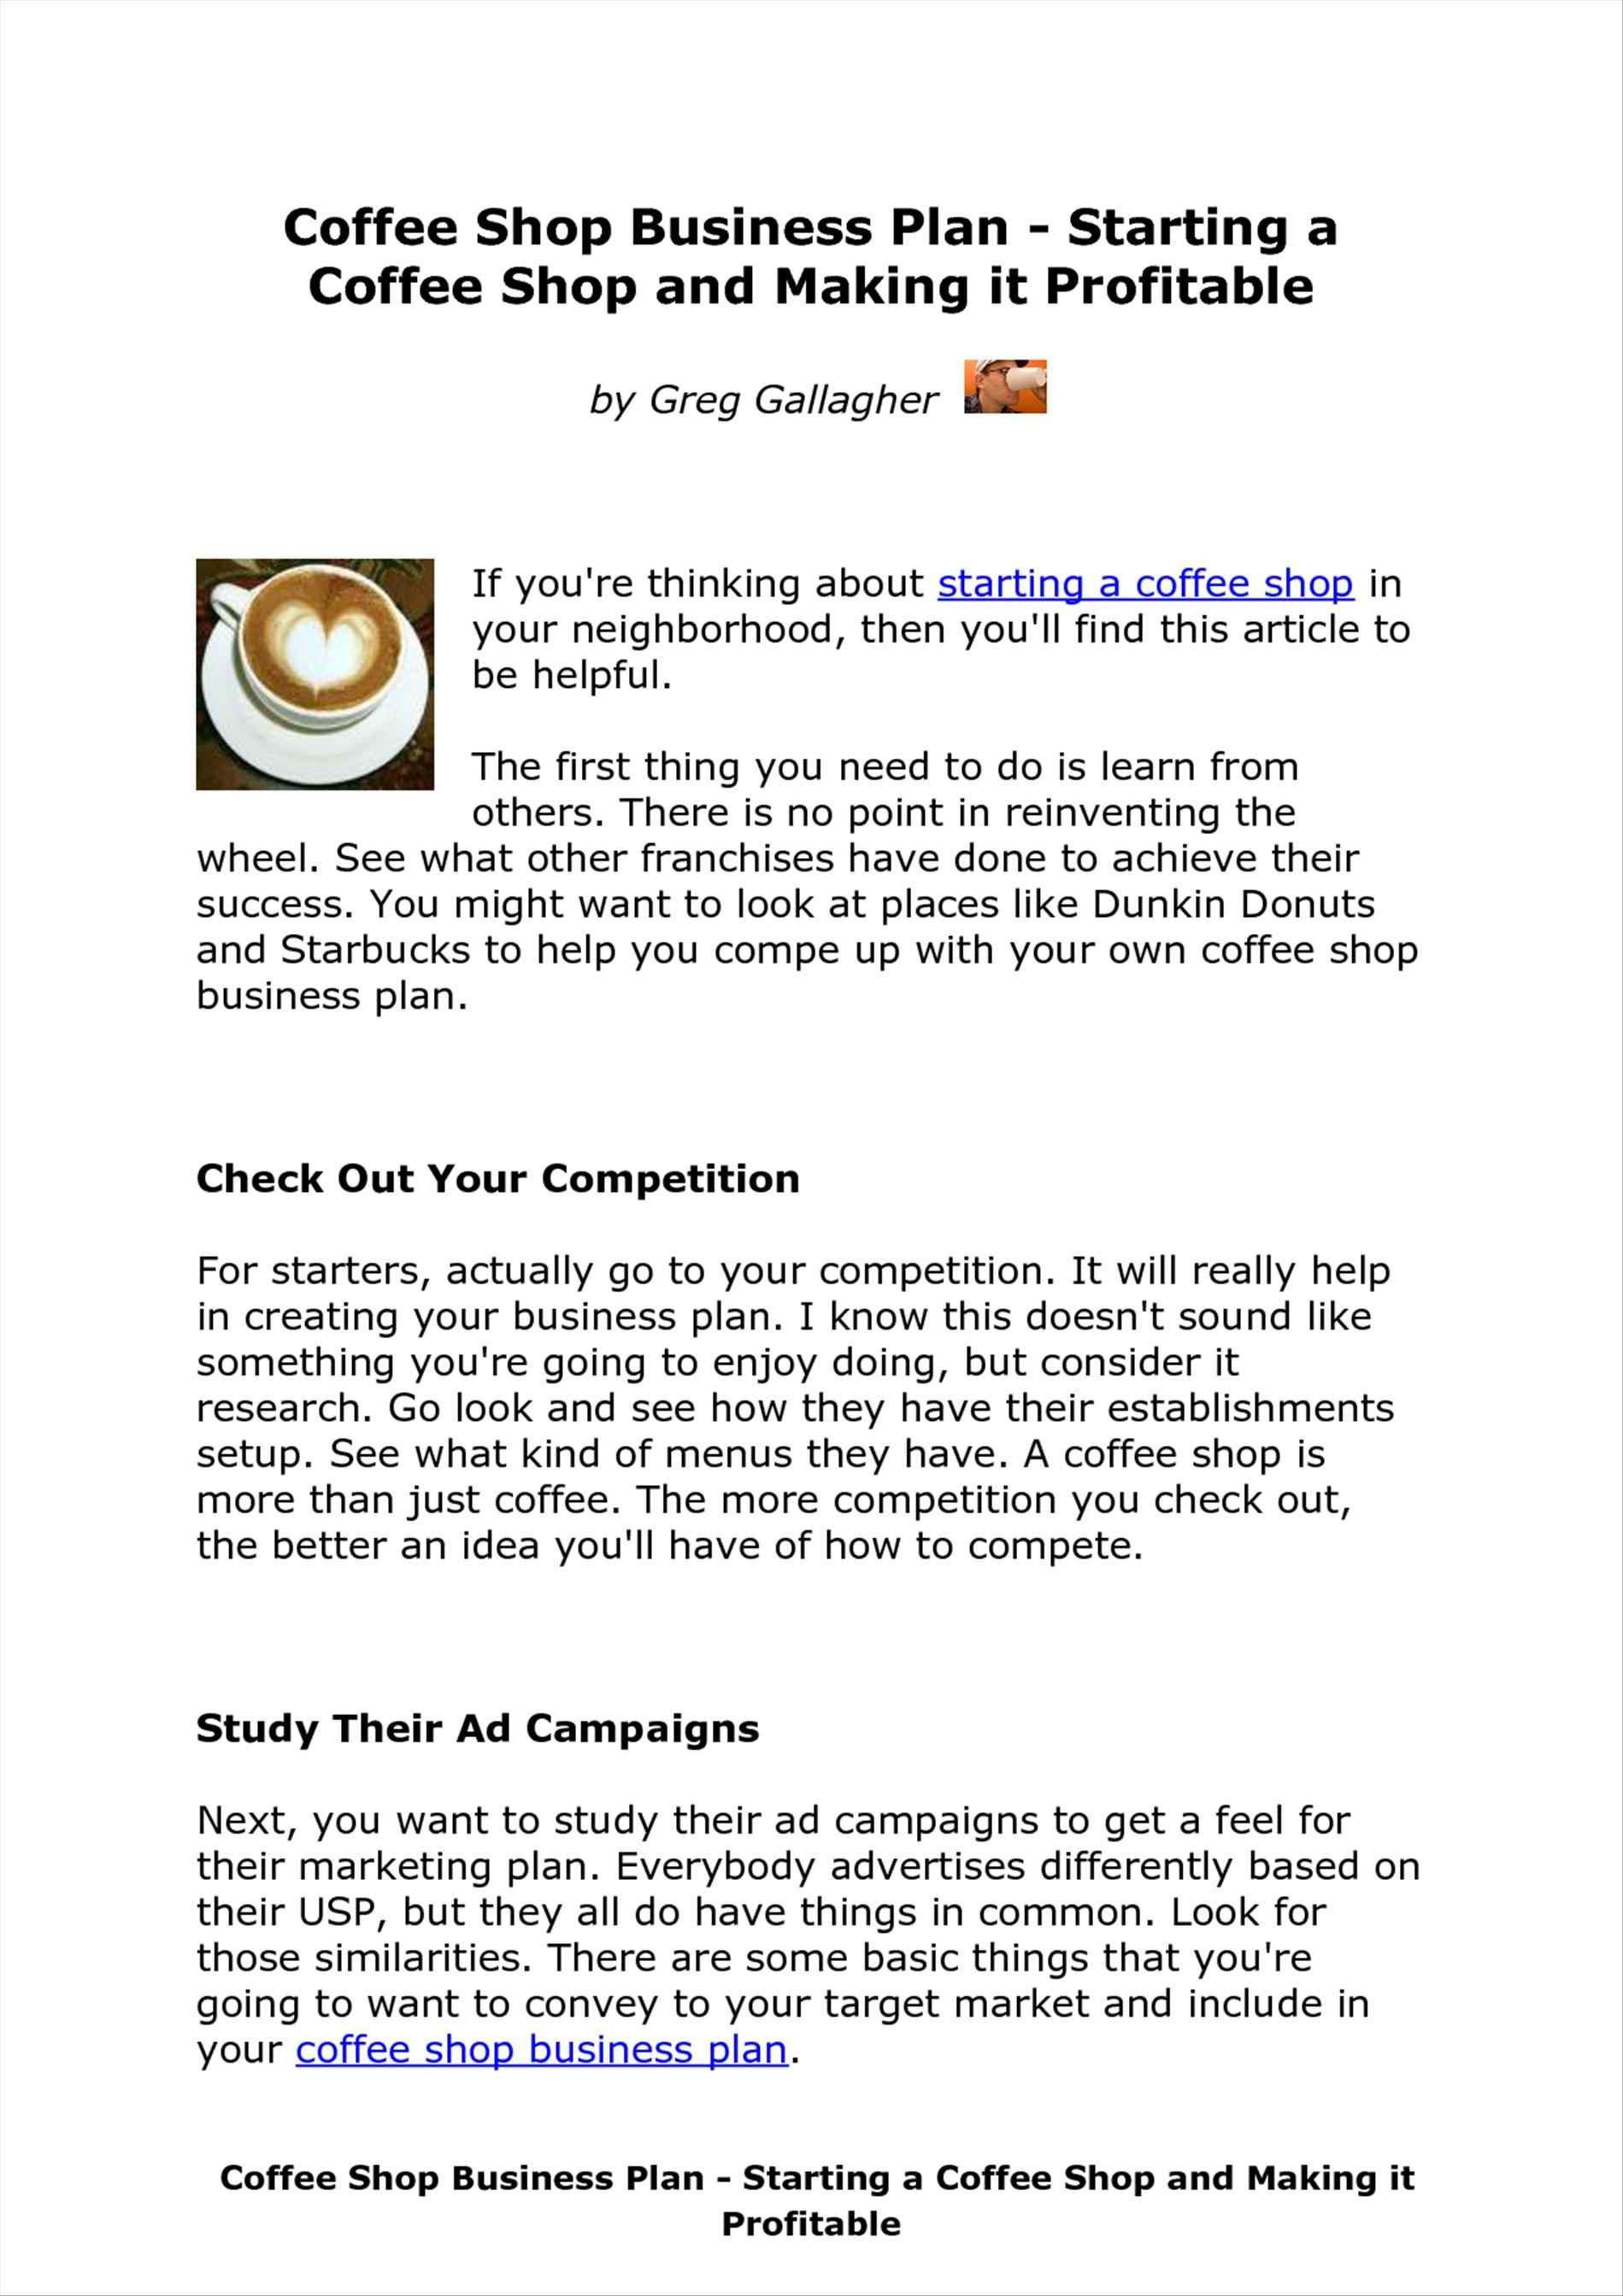 20 Coffee Shop Business Plan Template Simple Template Design Coffee Shop Business Plan Coffee Shop Business Business Plan Template Business plan template for restaurant